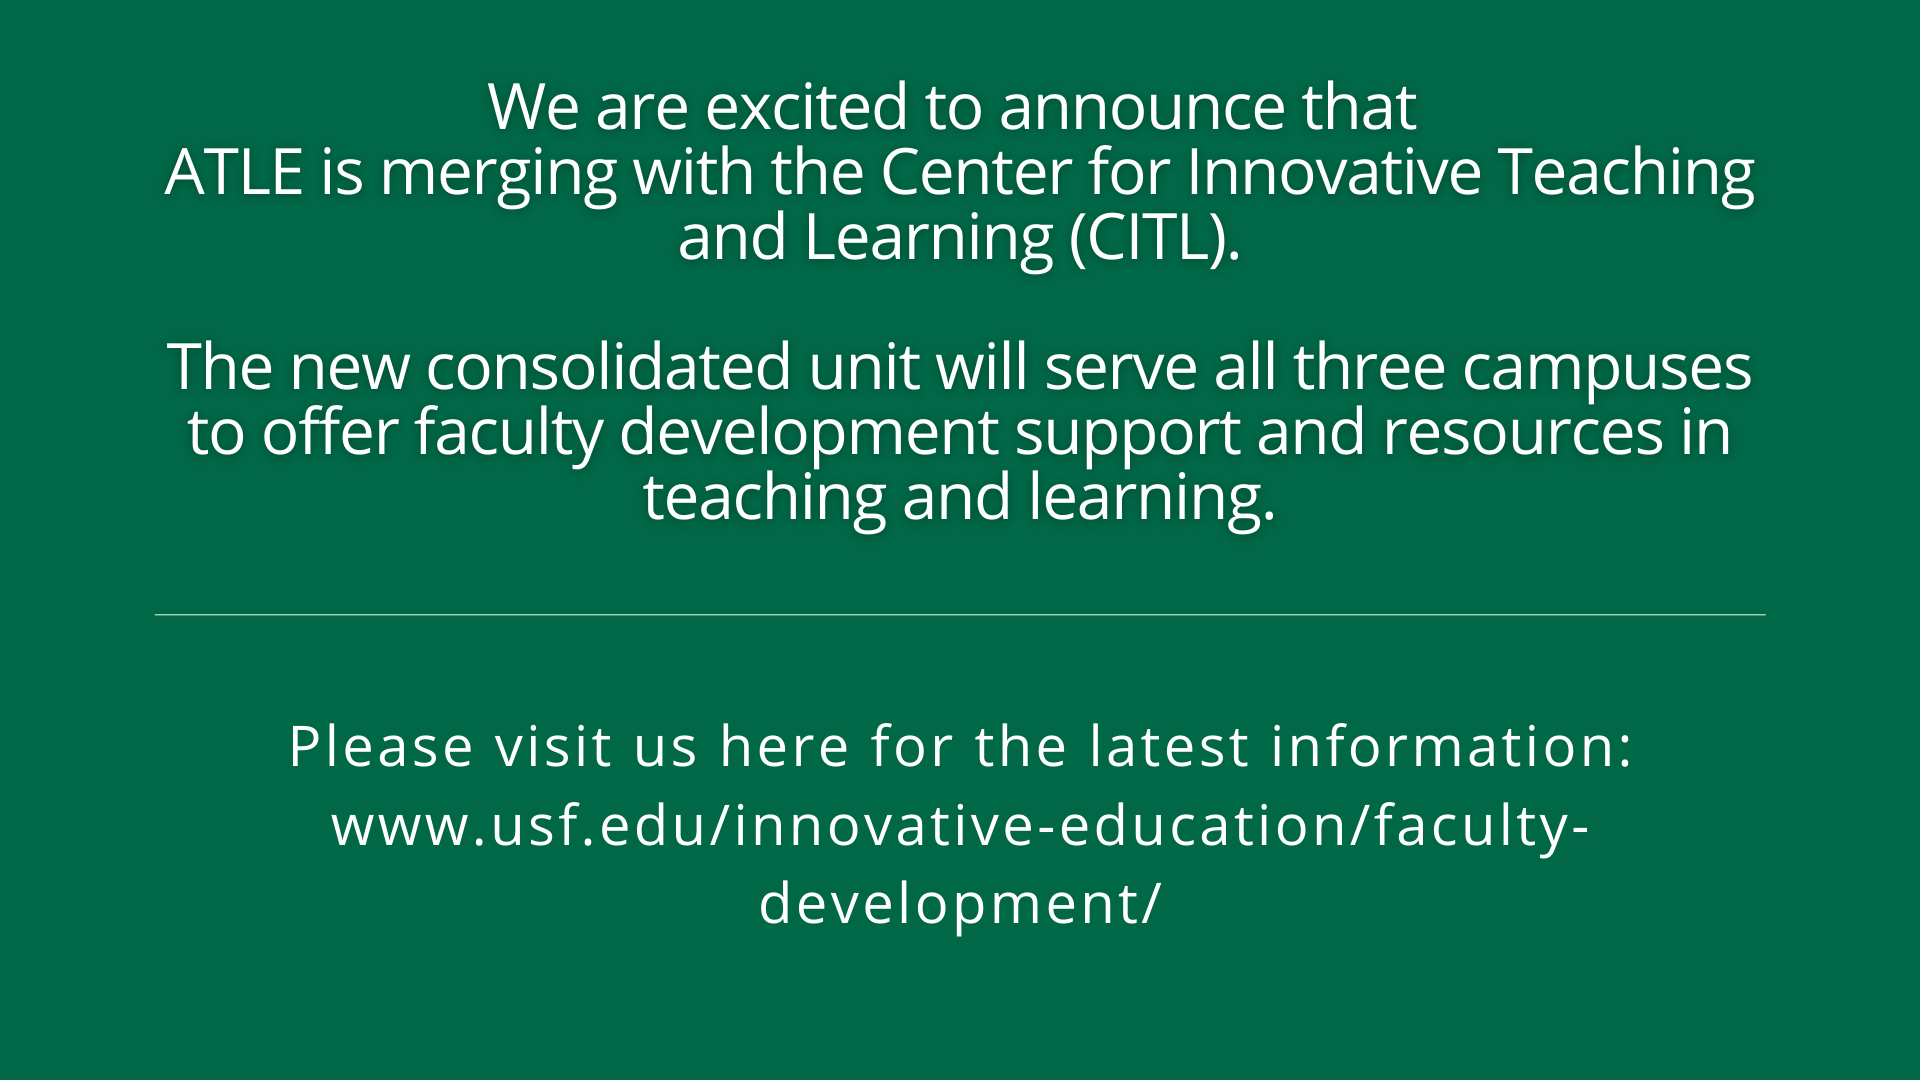 CITL announcement